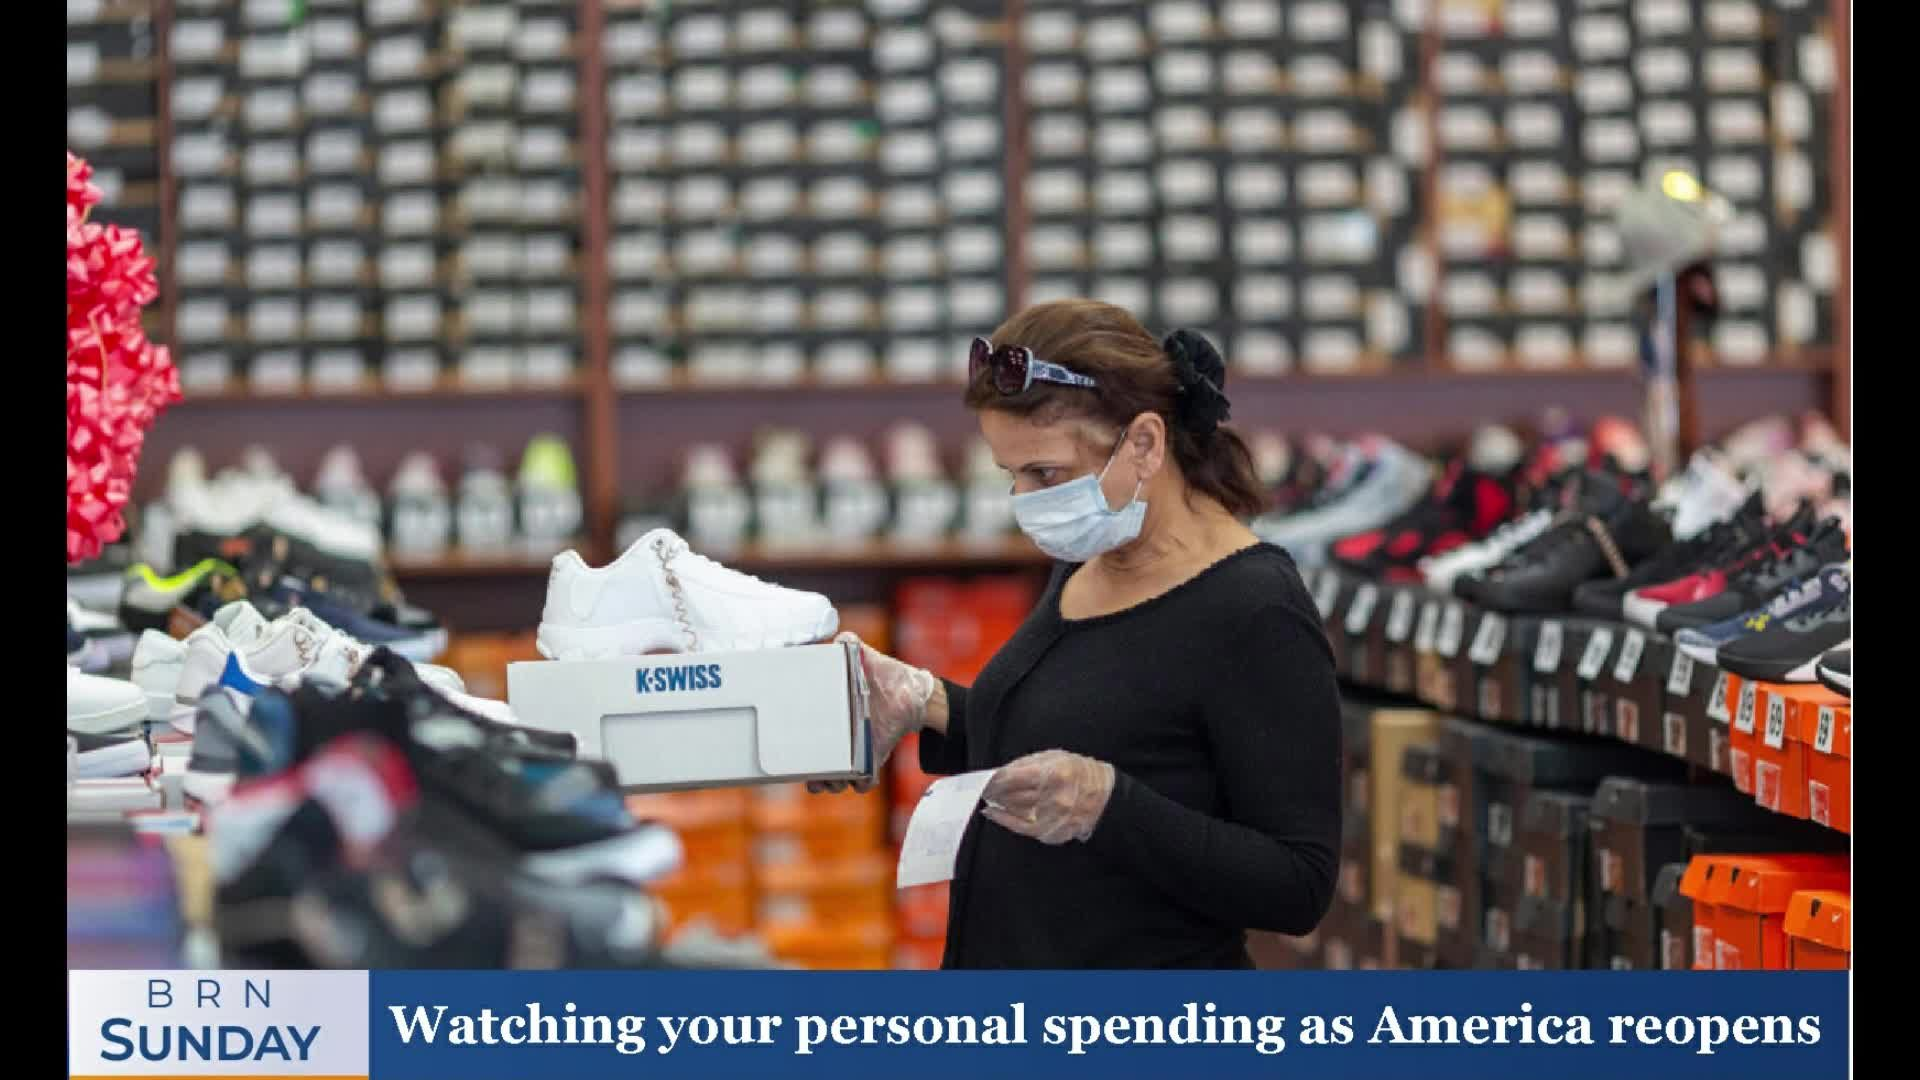 BRN Sunday | Watching your personal spending as America reopens